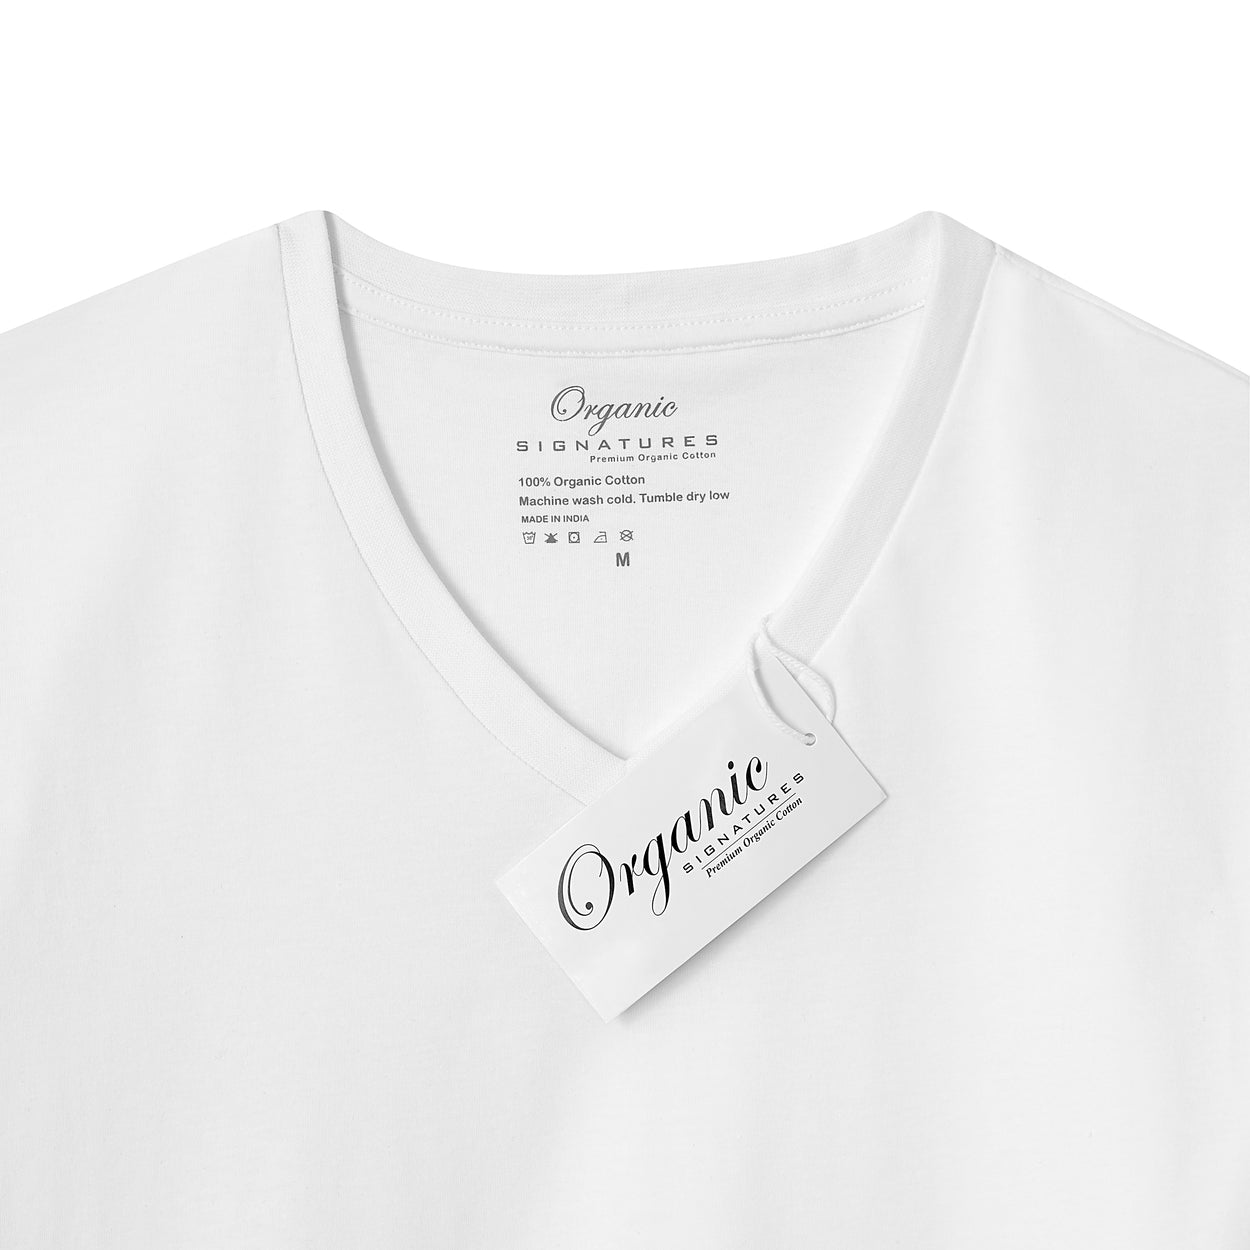 White Organic Signatures T Shirt for Men, V Neck, Short Sleeve (close up of neck tag)